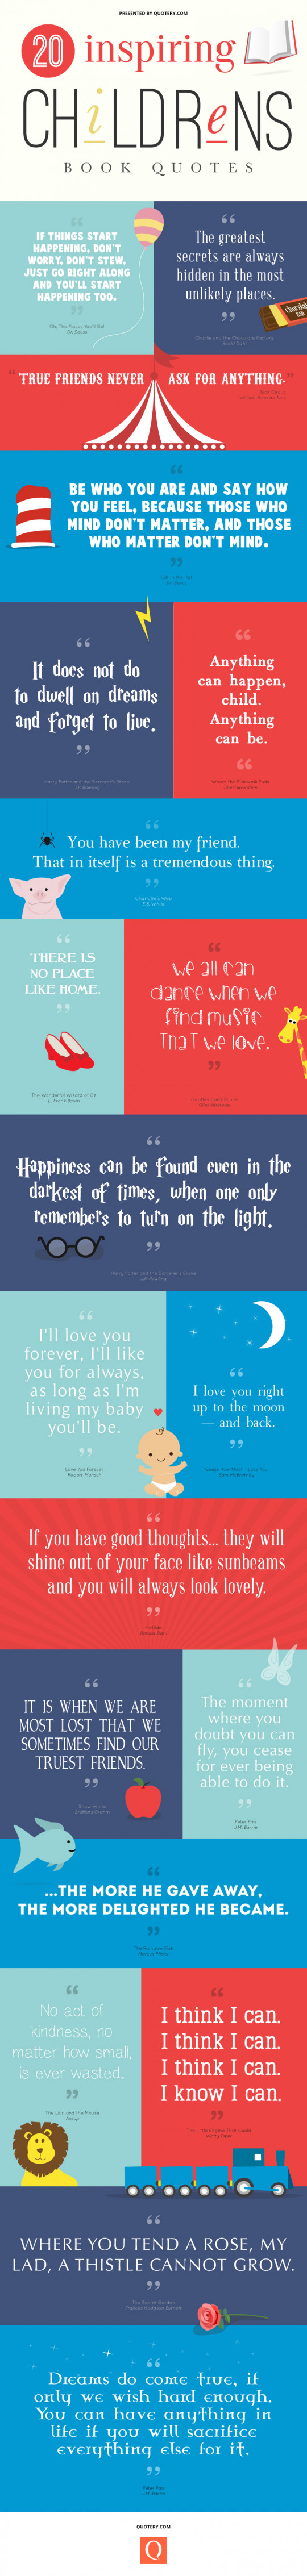 20 Inspiring Childrens Book Quotes Free Printables